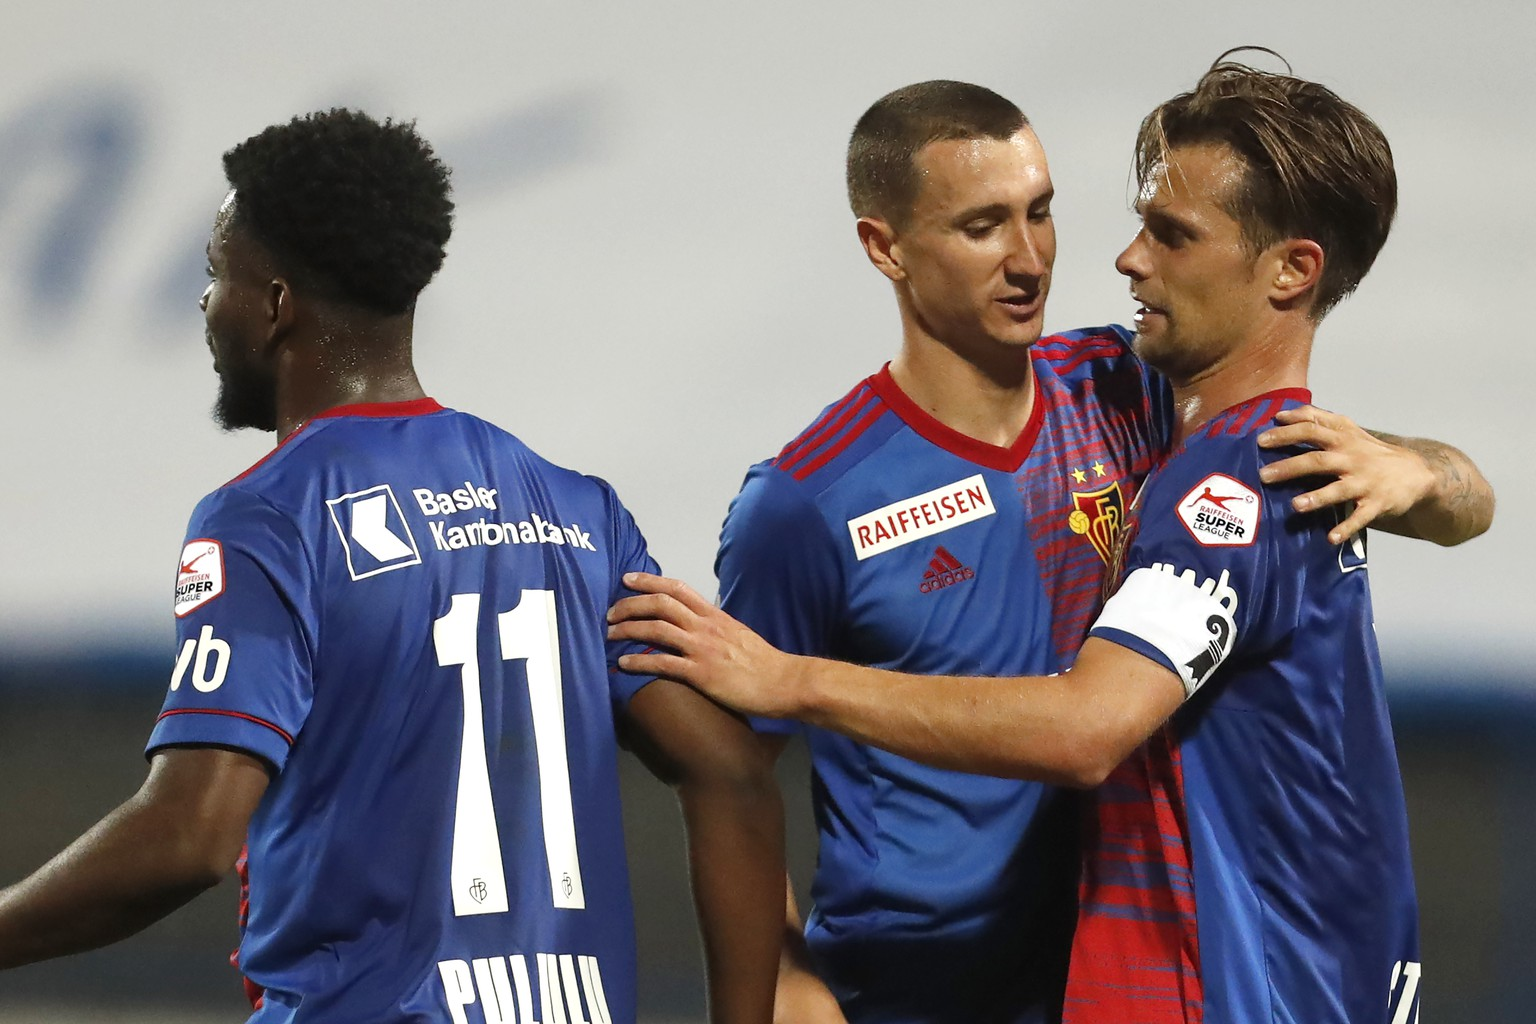 Basel's Valentin Stocker, right, celebrates with his teammate his goal against Osijek during the Europa League second qualifying round soccer match between Osijek and Basel at the Gradski Vrt stadium in Osijek, Croatia, Thursday, Sept. 17, 2020. (AP Photo/Darko Bandic)